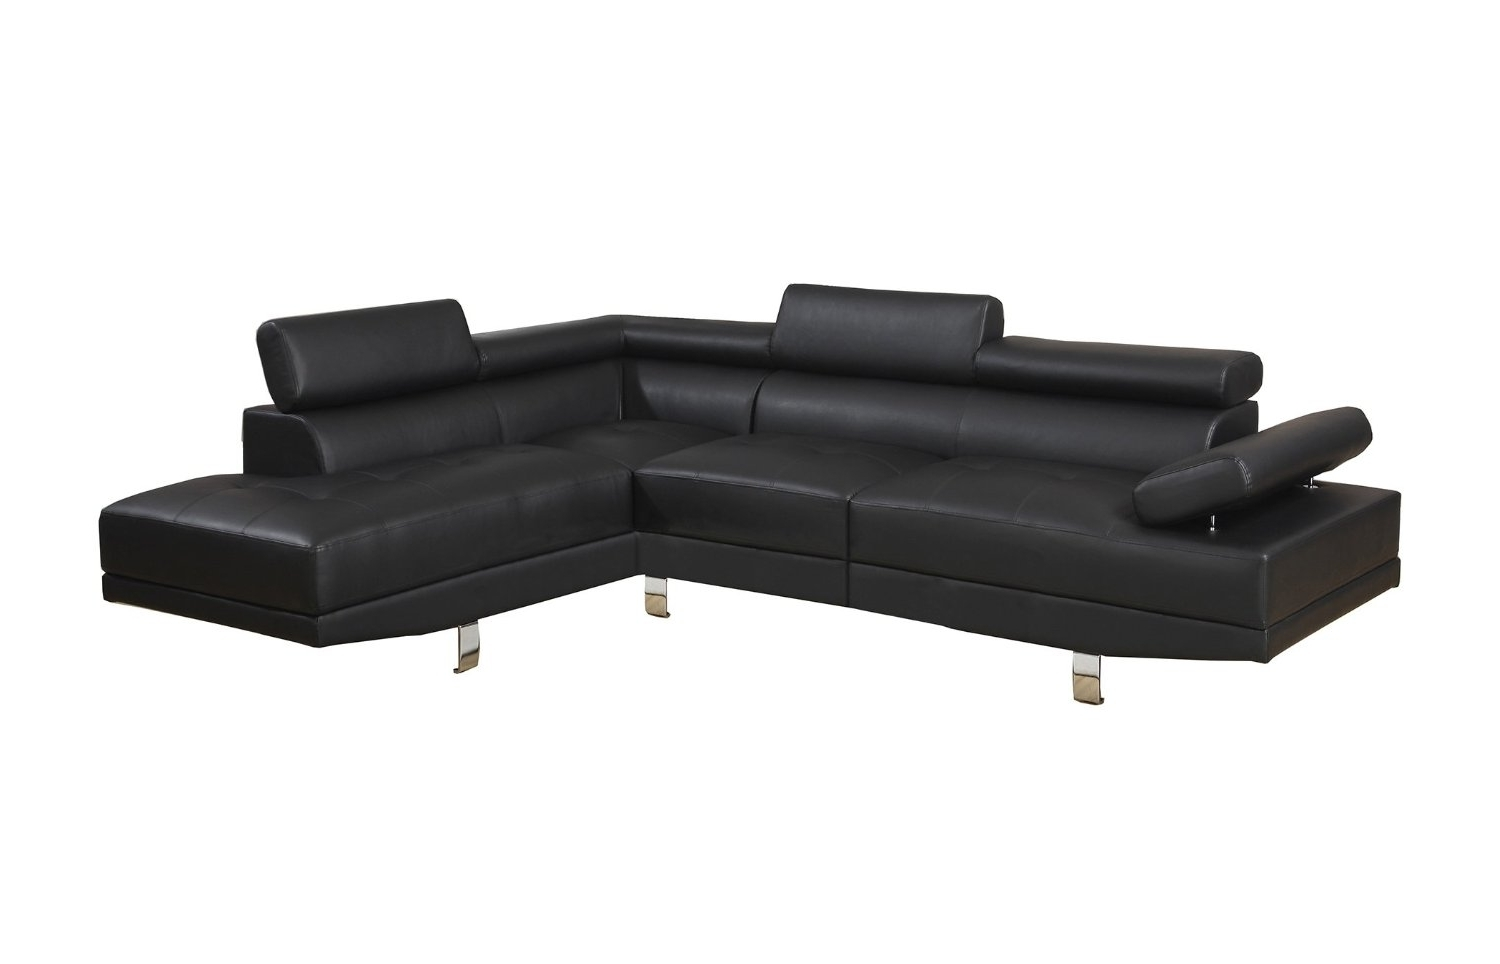 Sectional Sofas Amazon – Hotelsbacau For Well Liked Sectional Sofas At Amazon (View 16 of 20)